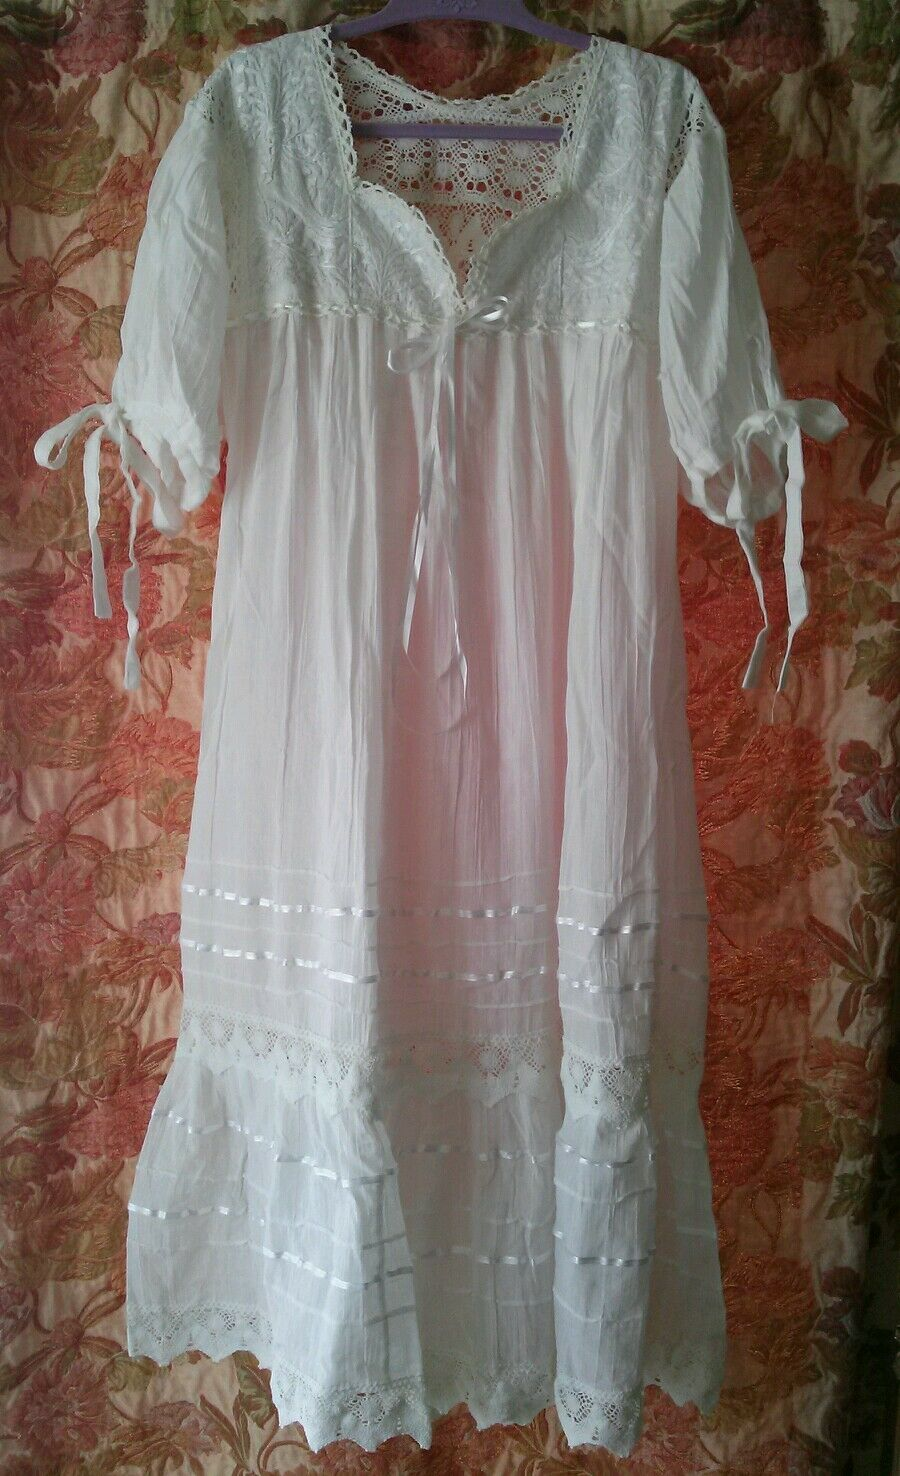 Vintage  White Gauze Lace Crochet Wedding Baby Doll Empire Bohemian Dress Size M